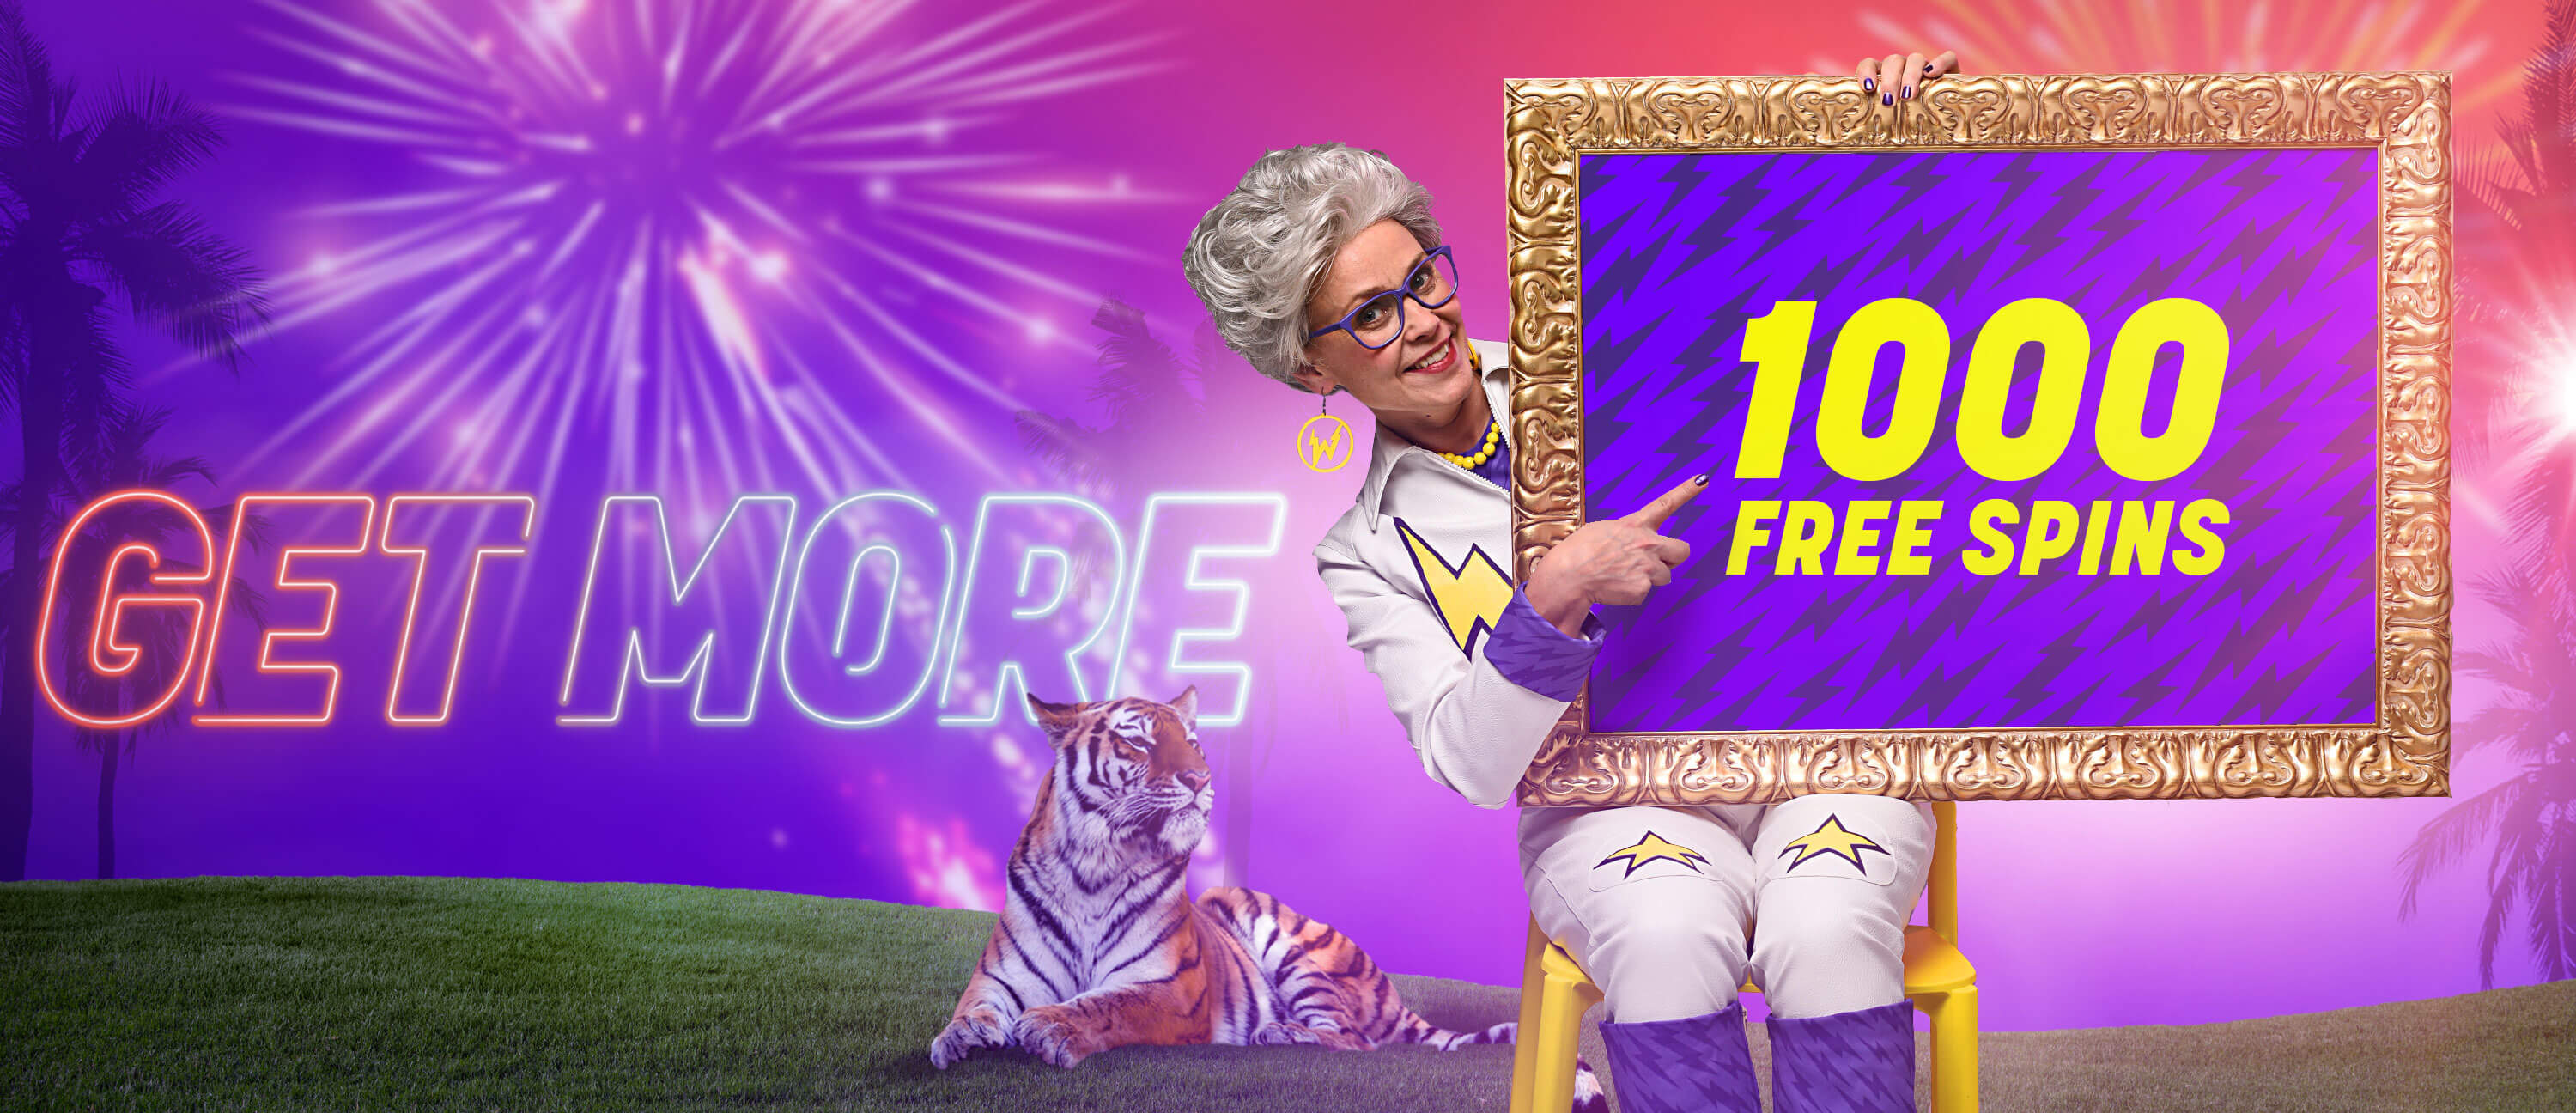 1000 Free Spins to a Lucky Winner Each day This Month